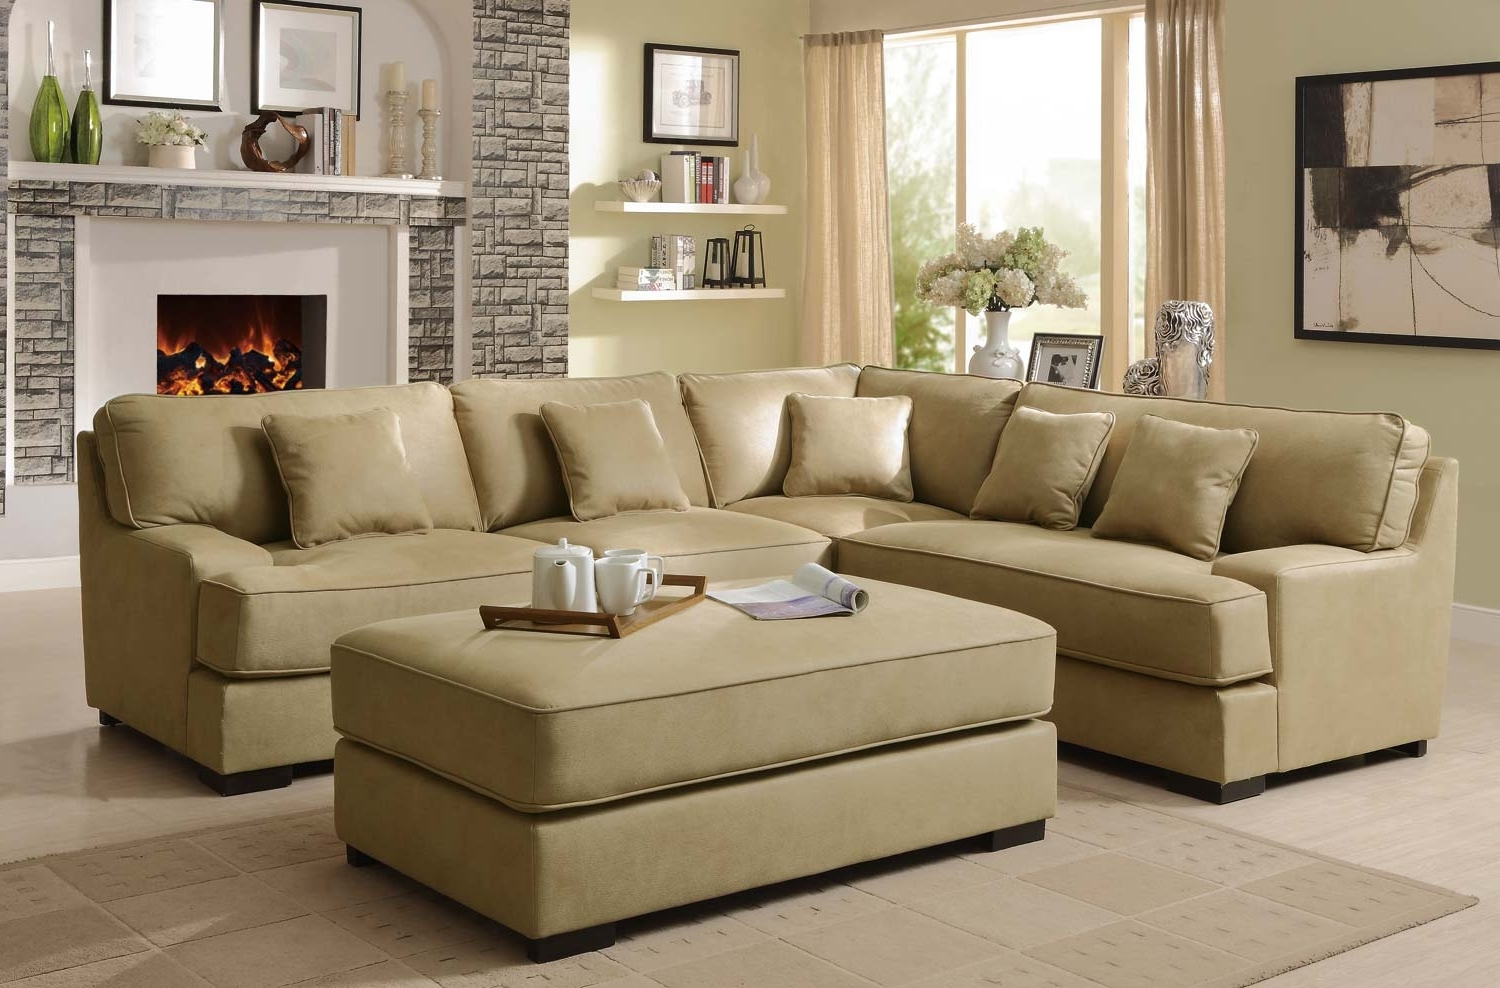 Latest Beige Sectional Sofas Inside Sectional Sofa Design: Amazing Beige Sectional Sofas Beige Leather (View 7 of 15)